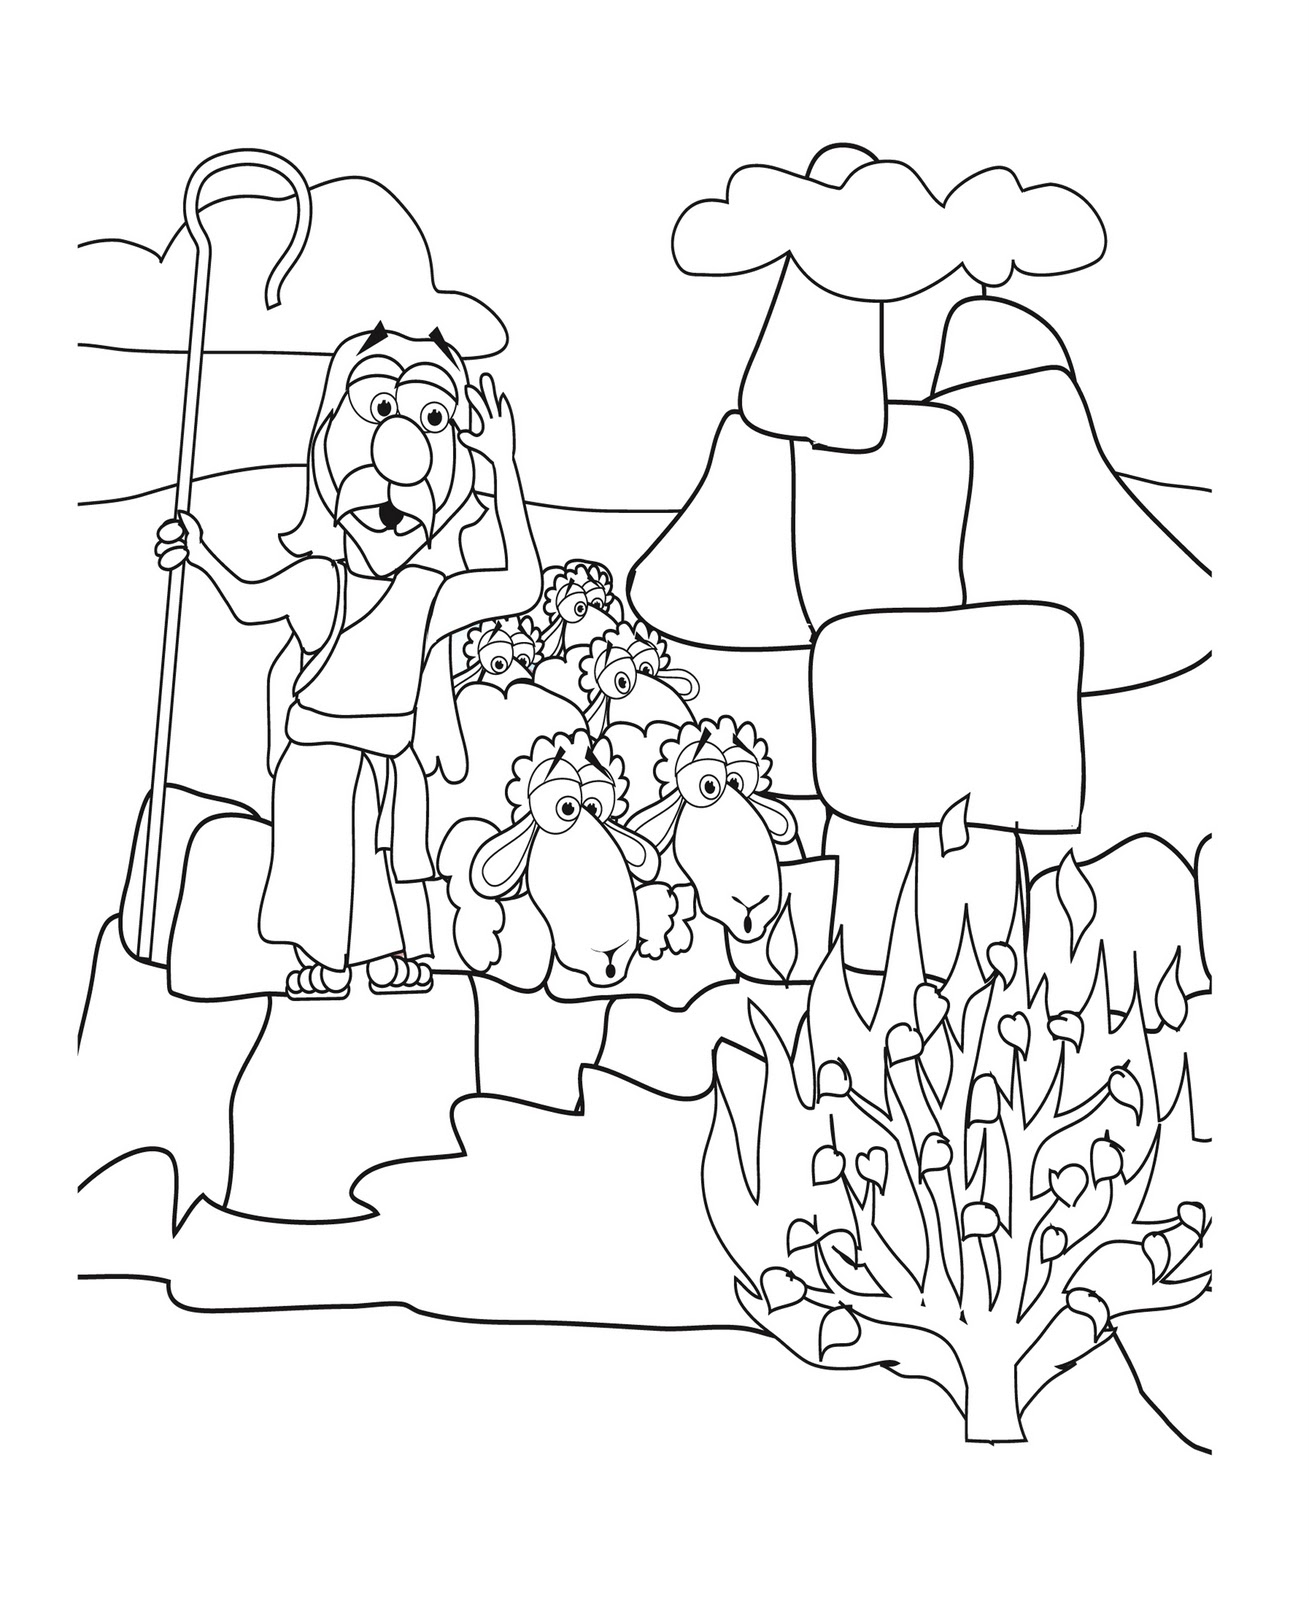 Coloring pages moses and ten commandments - Mrbiblehead Blogspot Com Moses Questiones God